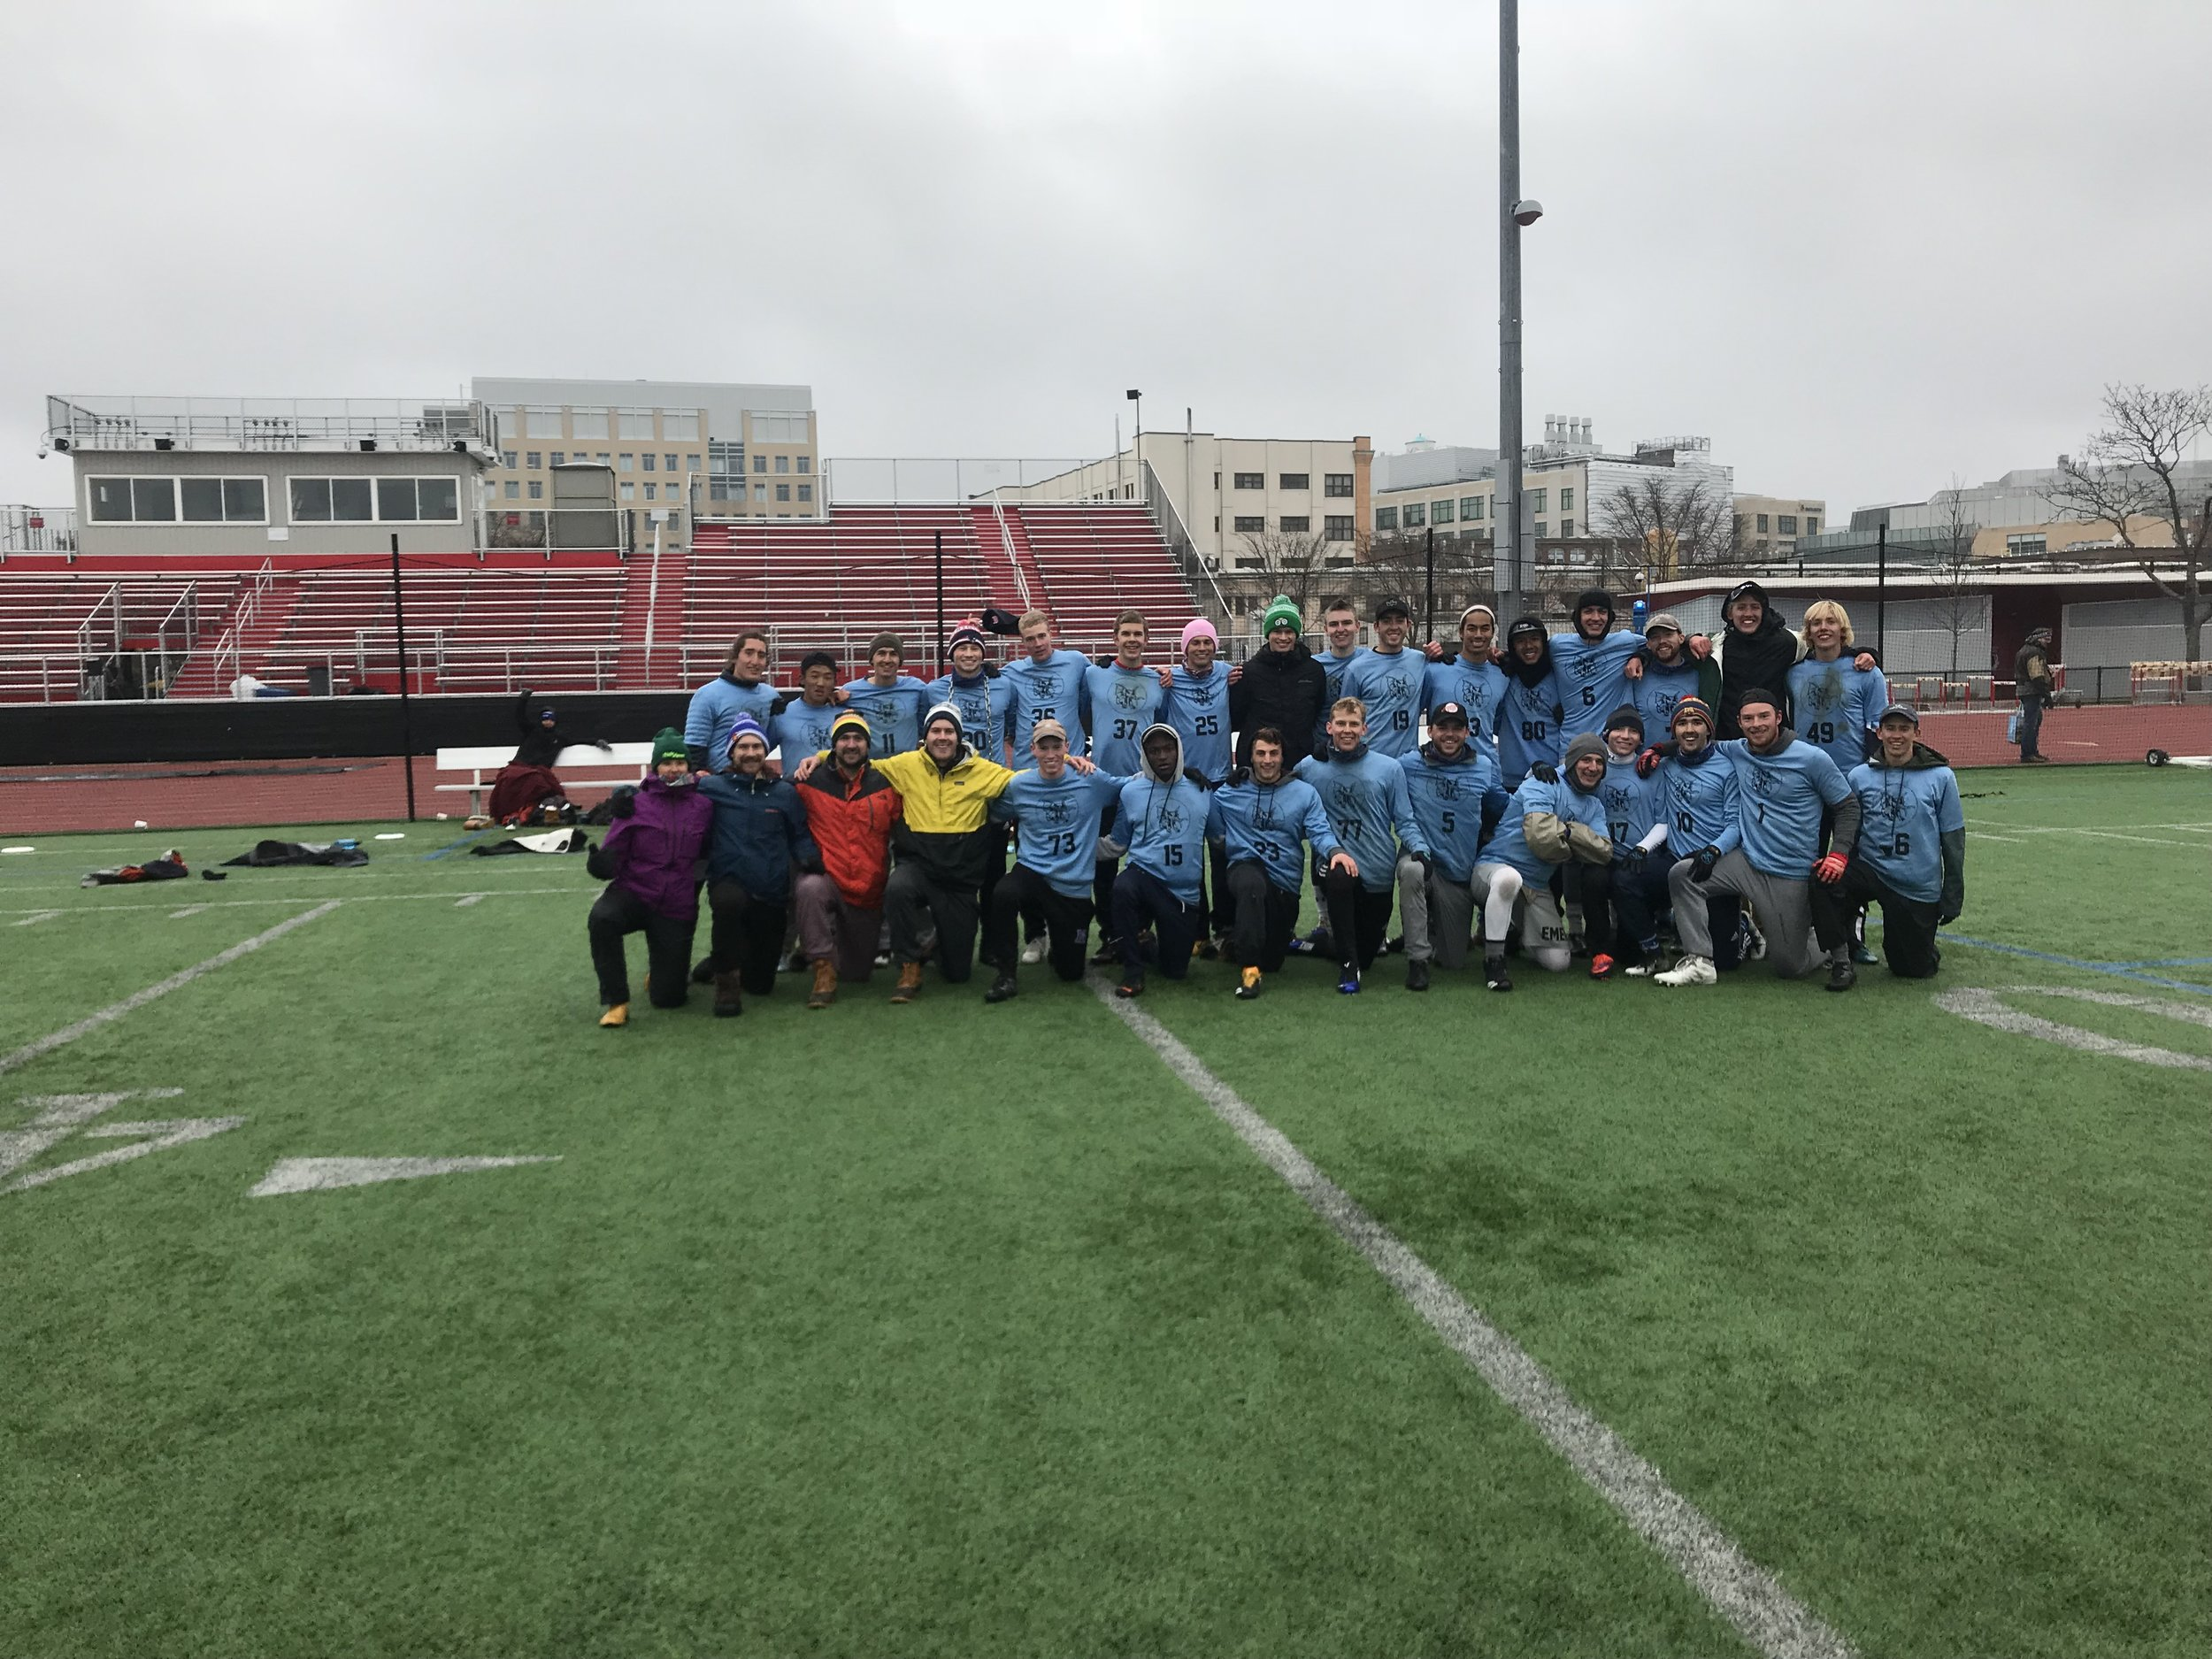 The Emen went 5 - 0 with a 13 - 6 victory over Northeastern in the finals.